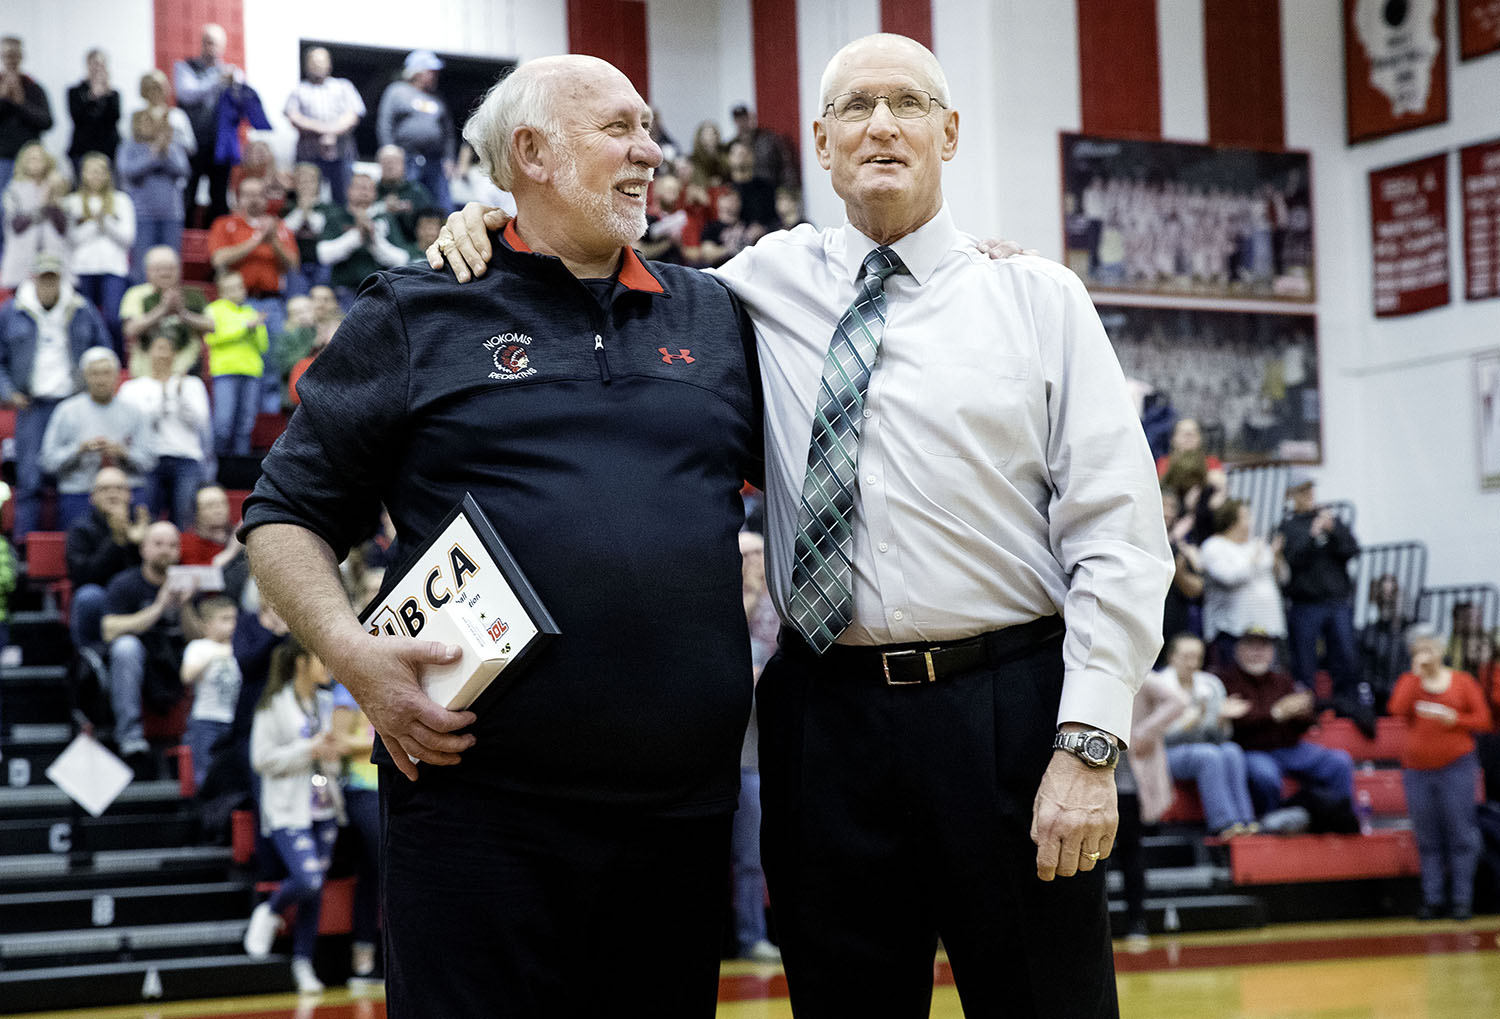 Nokomis High School boys basketball head coach Steve Kimbro, left, stands with former teammate and Lincoln High School boys basketball head coach Neil Alexander during a special ceremony to honor Kimbro's recent entrance into the 800 win club before the two schools competed Saturday, Jan. 26, 2019. Alexander has also earned 800 wins as a coach. [Ted Schurter/The State Journal-Register]